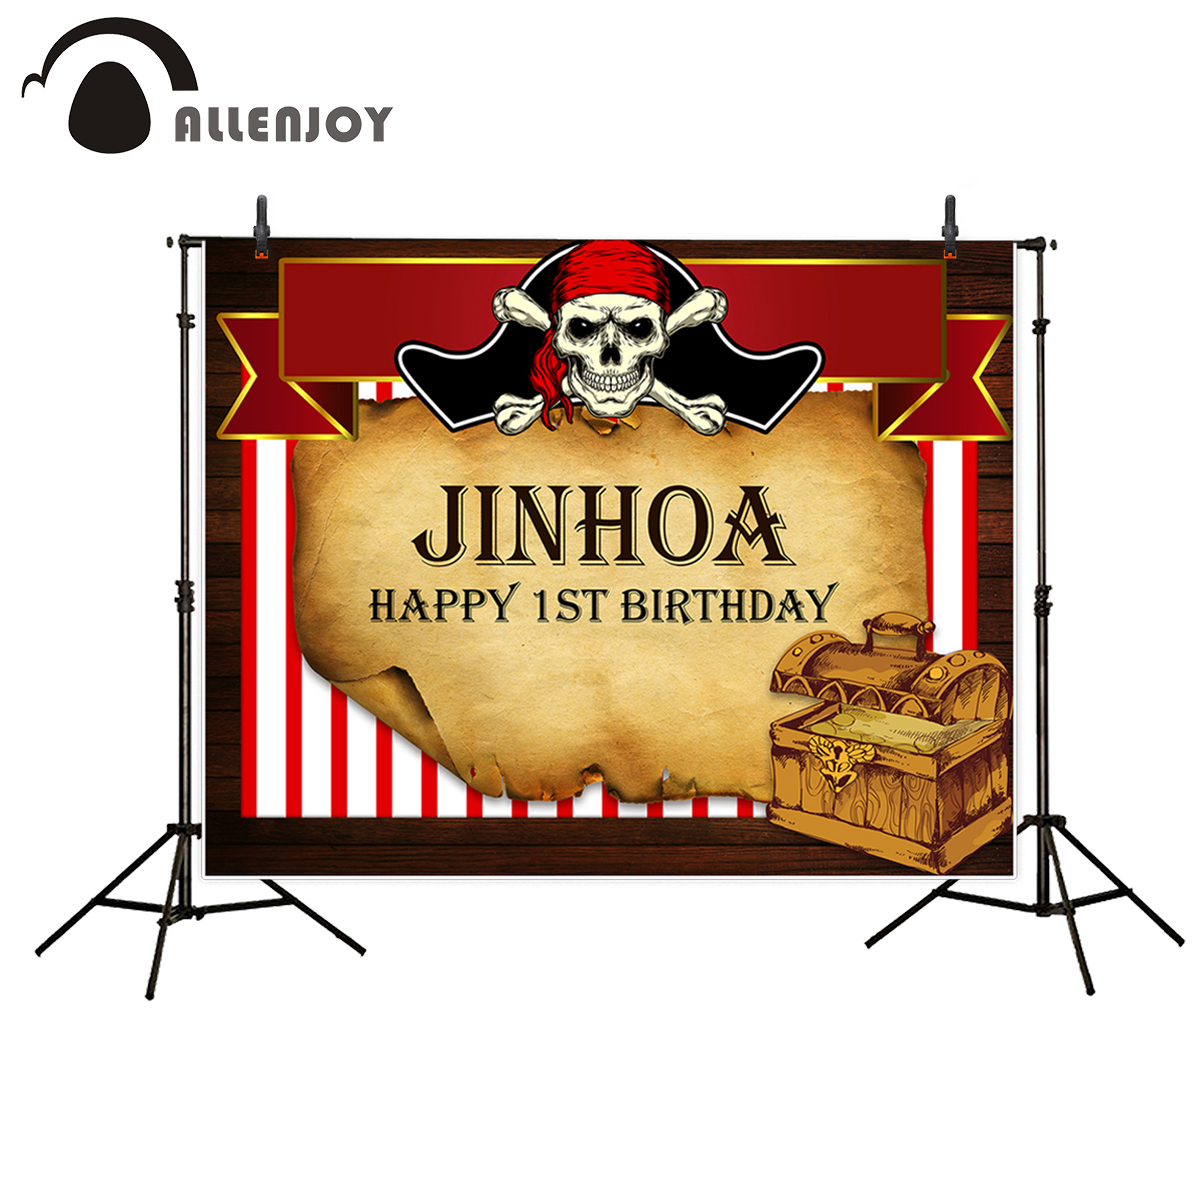 Allenjoy Pirate Background treasure box Birthday Background Custom Name photocall for a photo shoot photographic photo backdrop